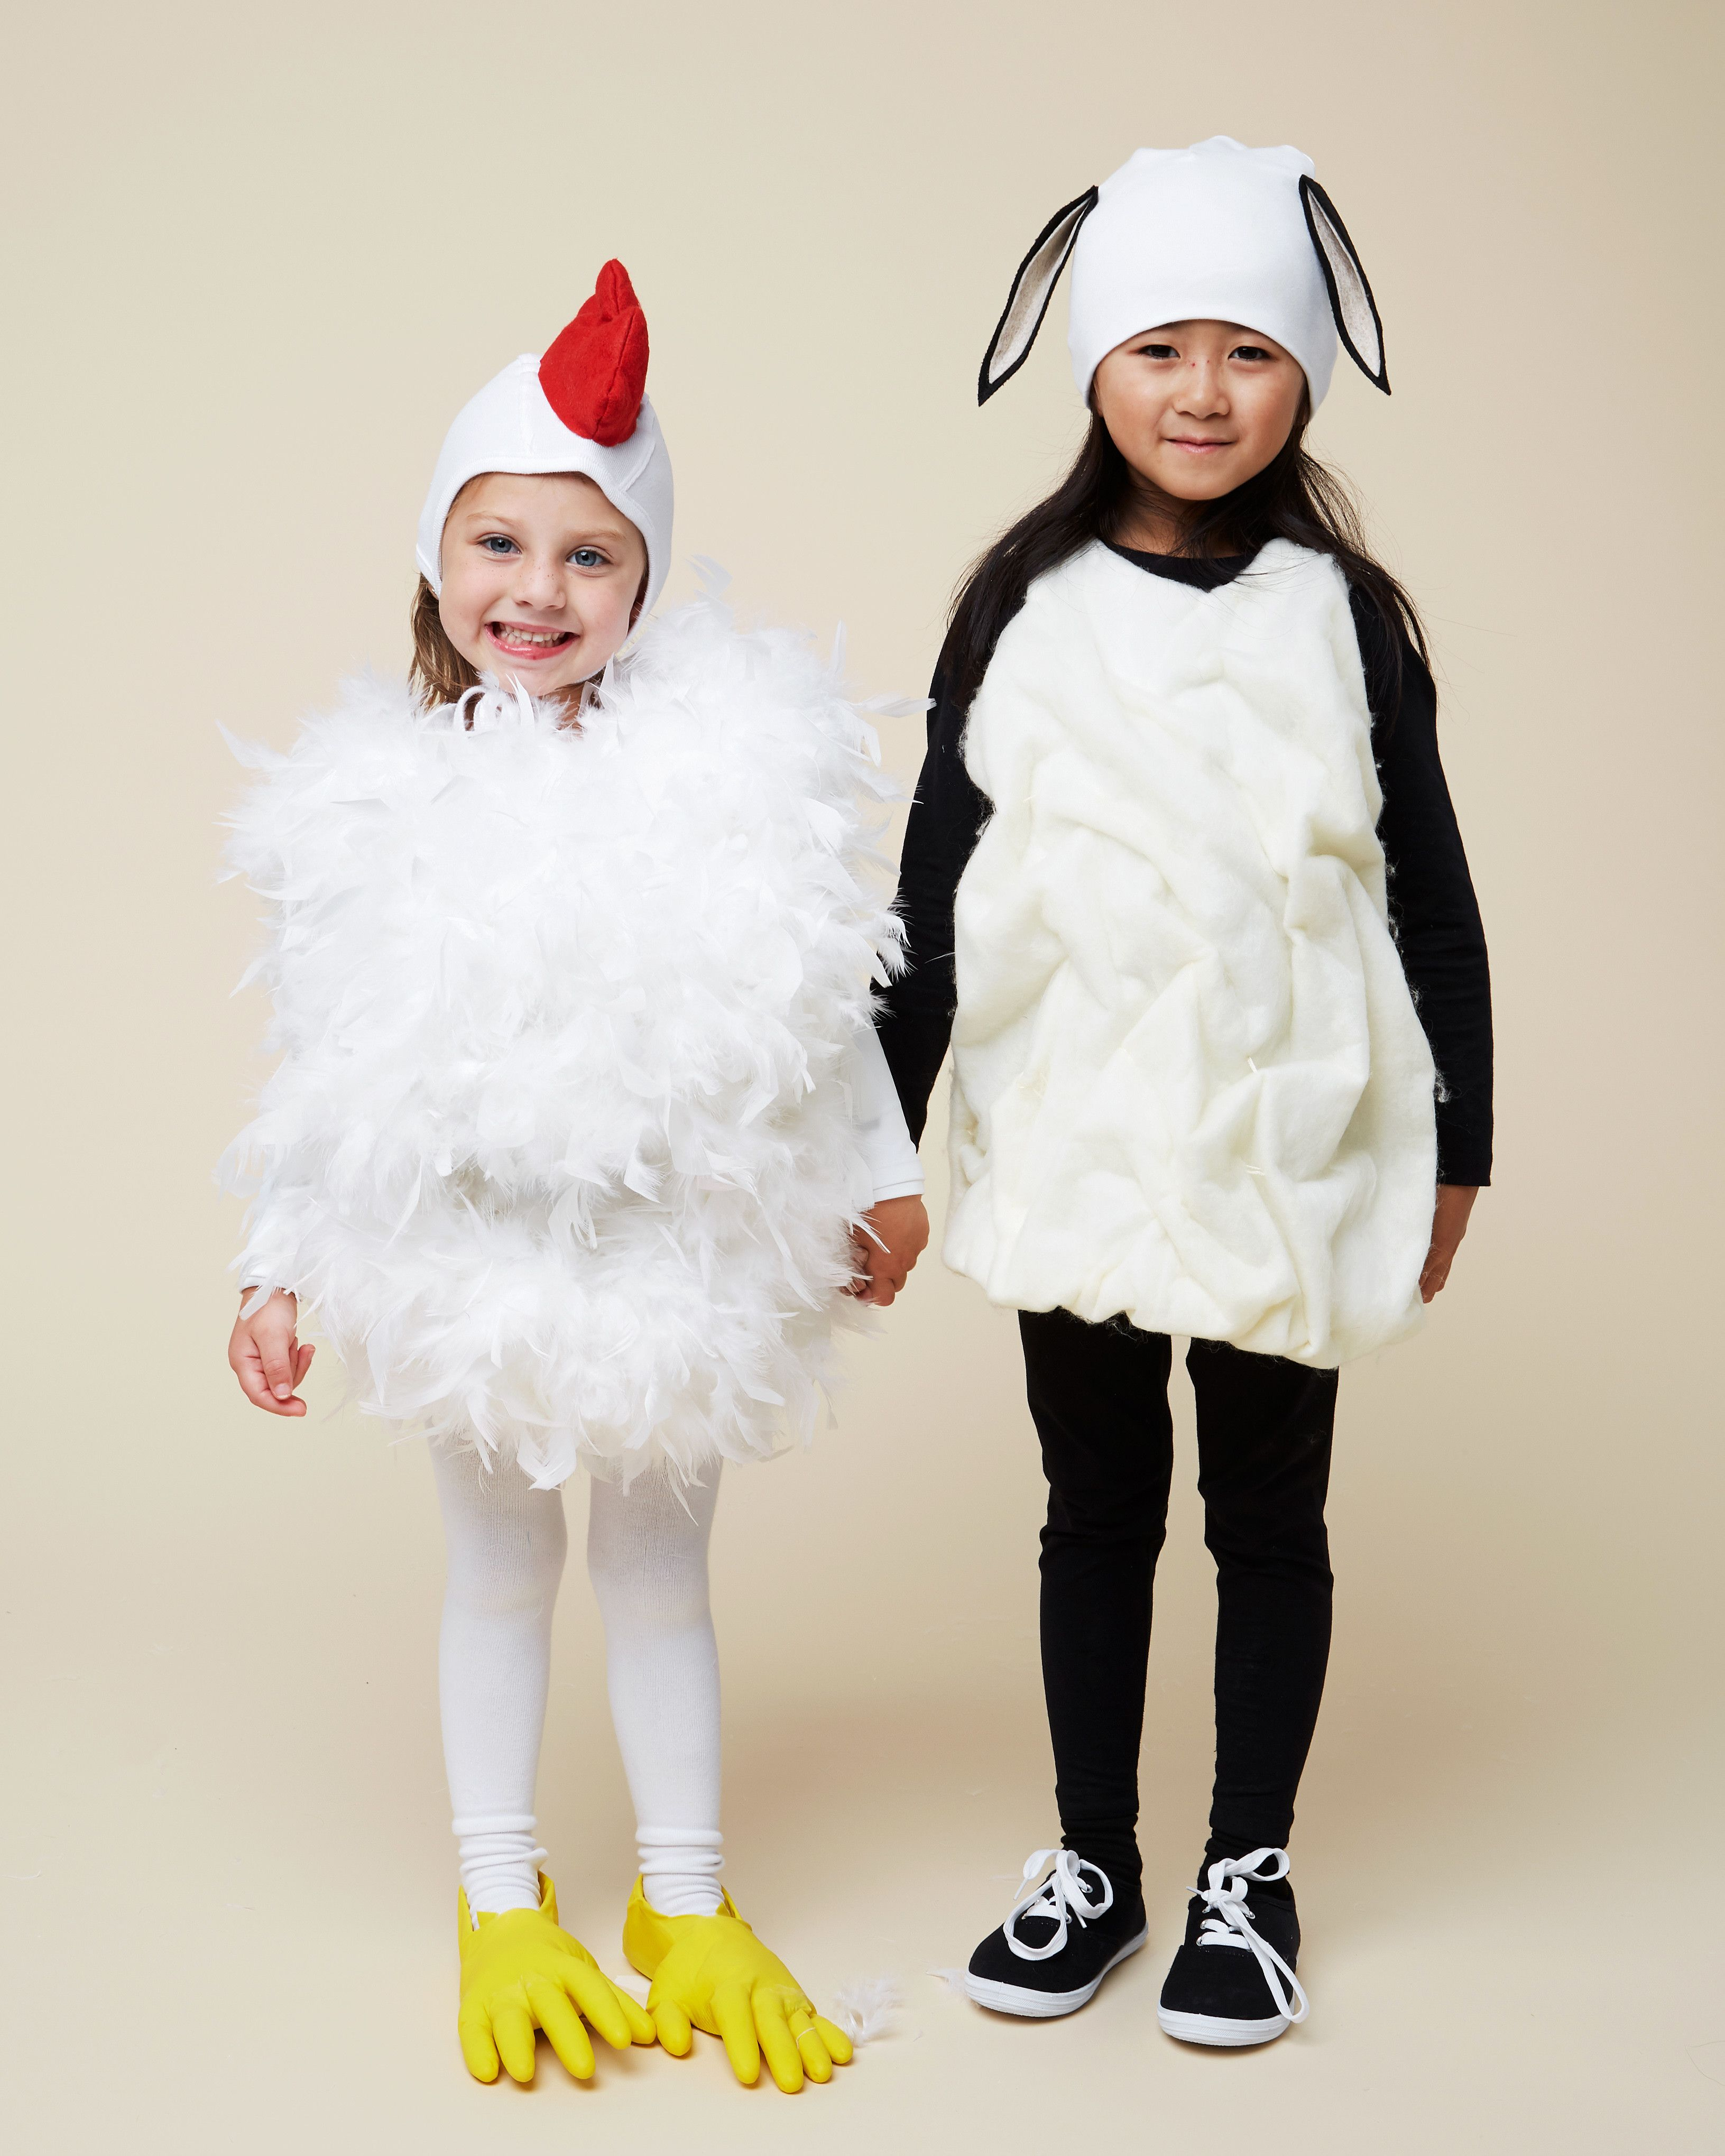 2 Farm Animal Costumes That Pair Perfectly For Best Friends Chicken Costume Kids Chicken Costumes Farmer Halloween Costume